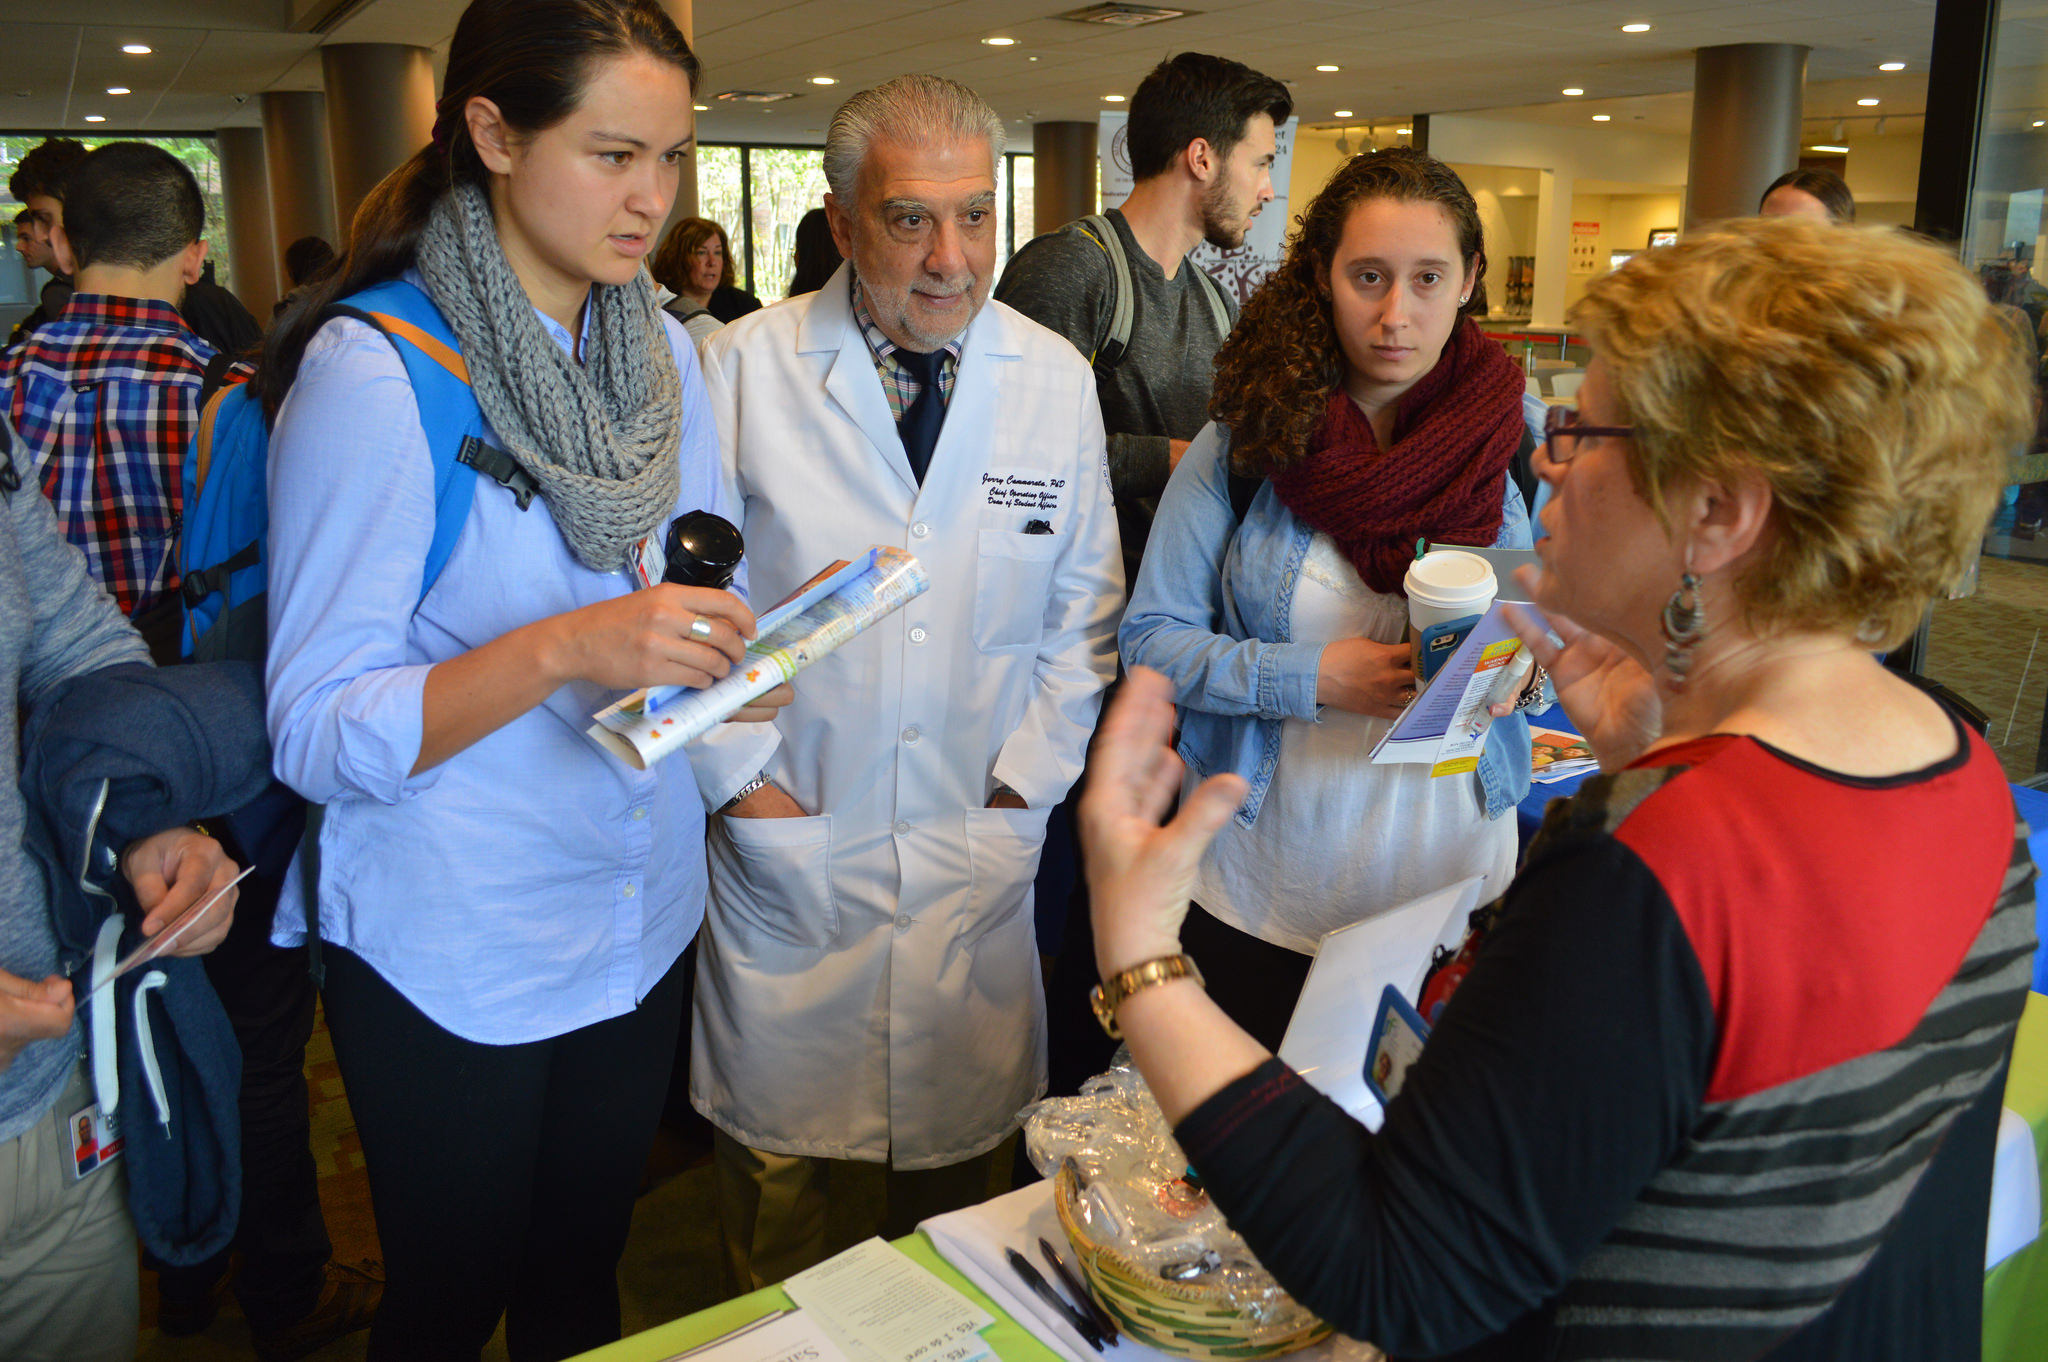 TouroCOM-Middletown D.O. student Andrea Attenasio, far left, speaks to an agency representative at the JMHCA Fair in October 2015.